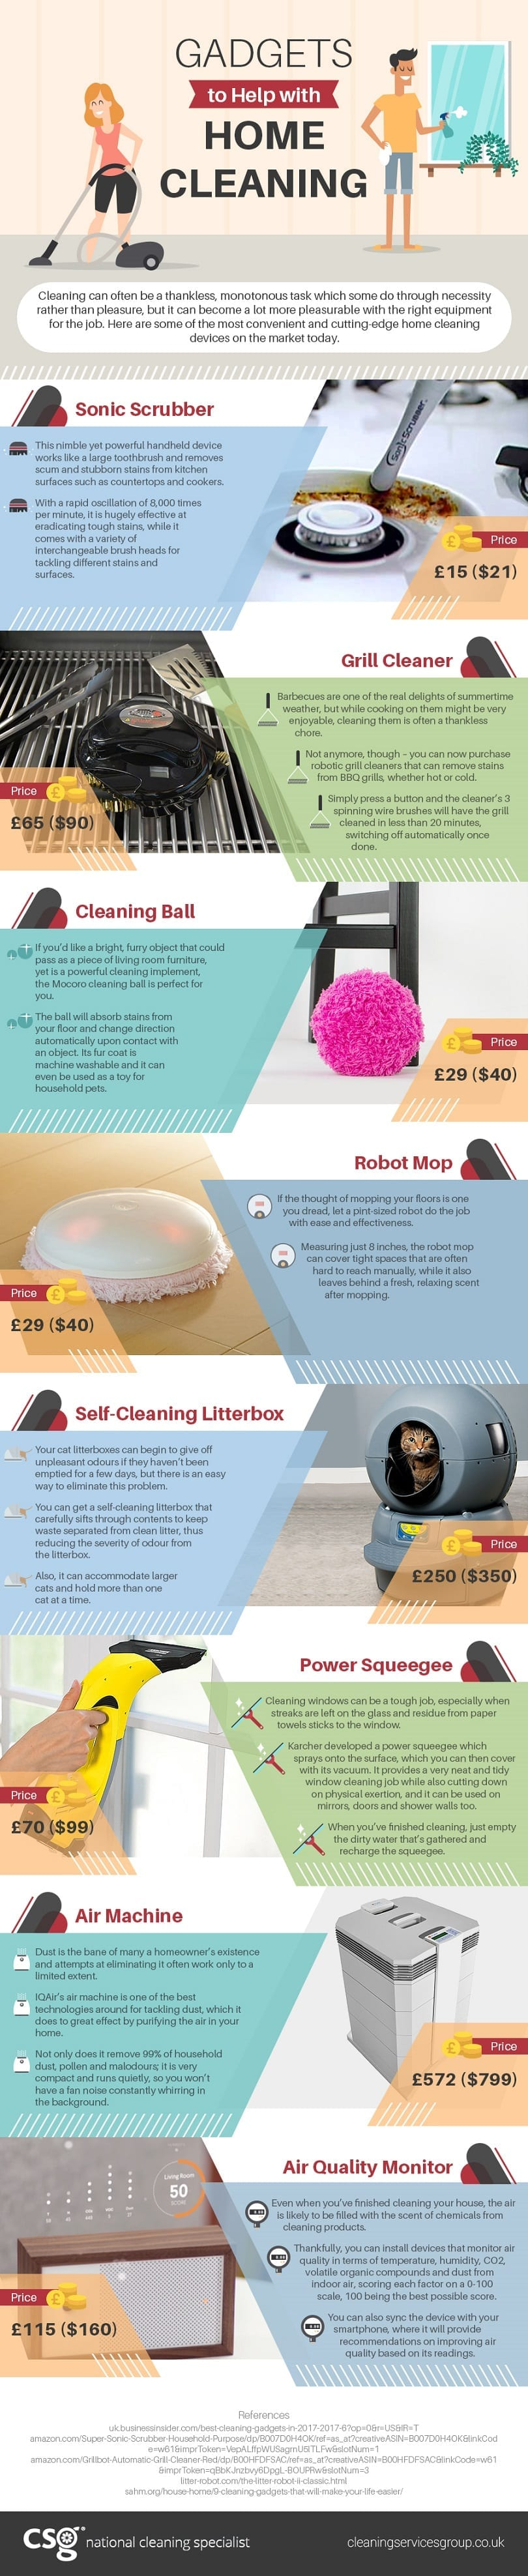 Gadgets to Help in home Cleaning (Infographic)